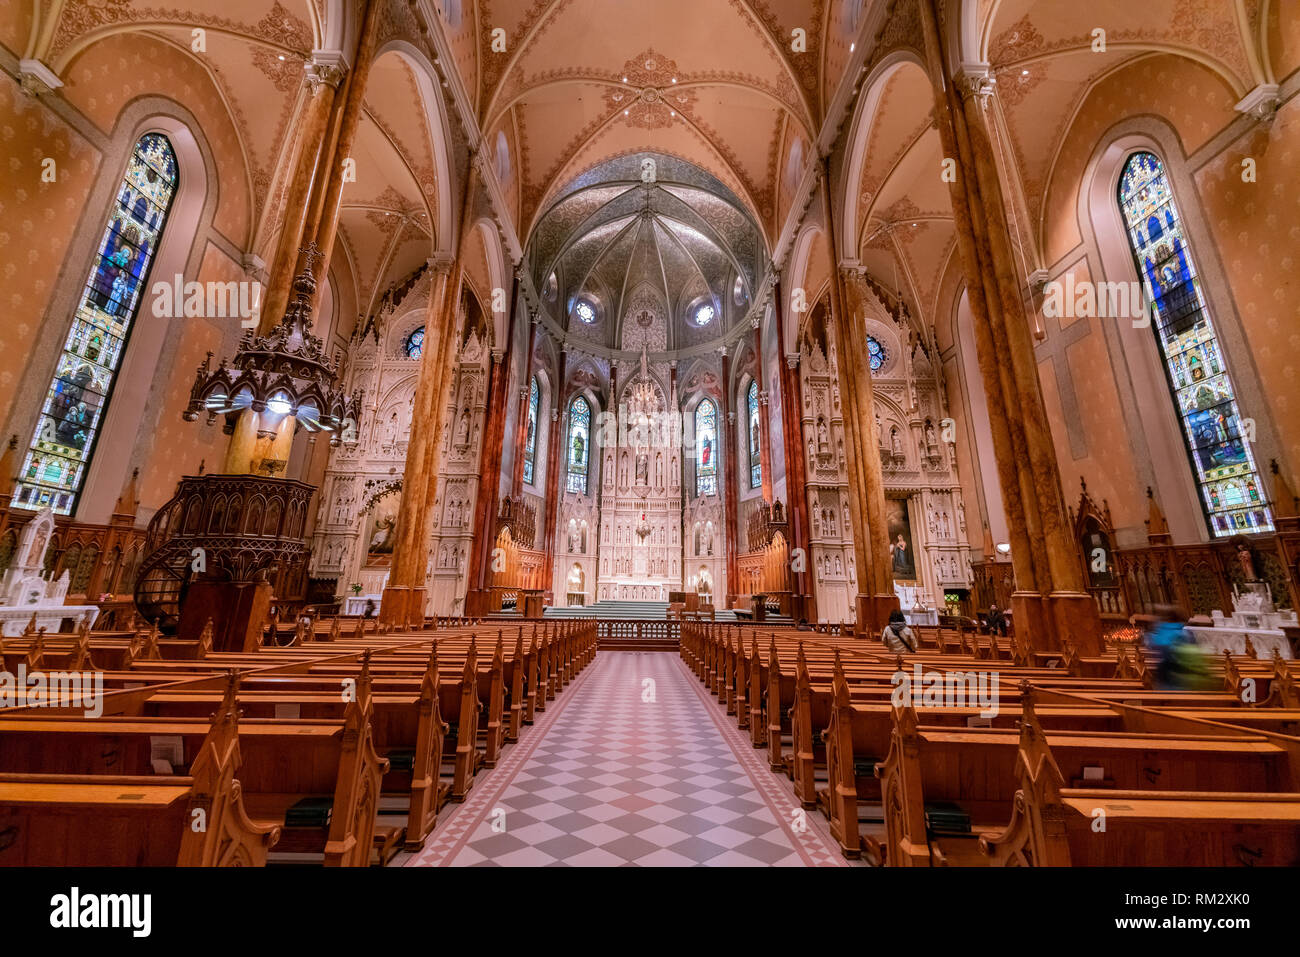 Interior view of the famous Saint Patrick's Basilica at Montreal, Canada - Stock Image